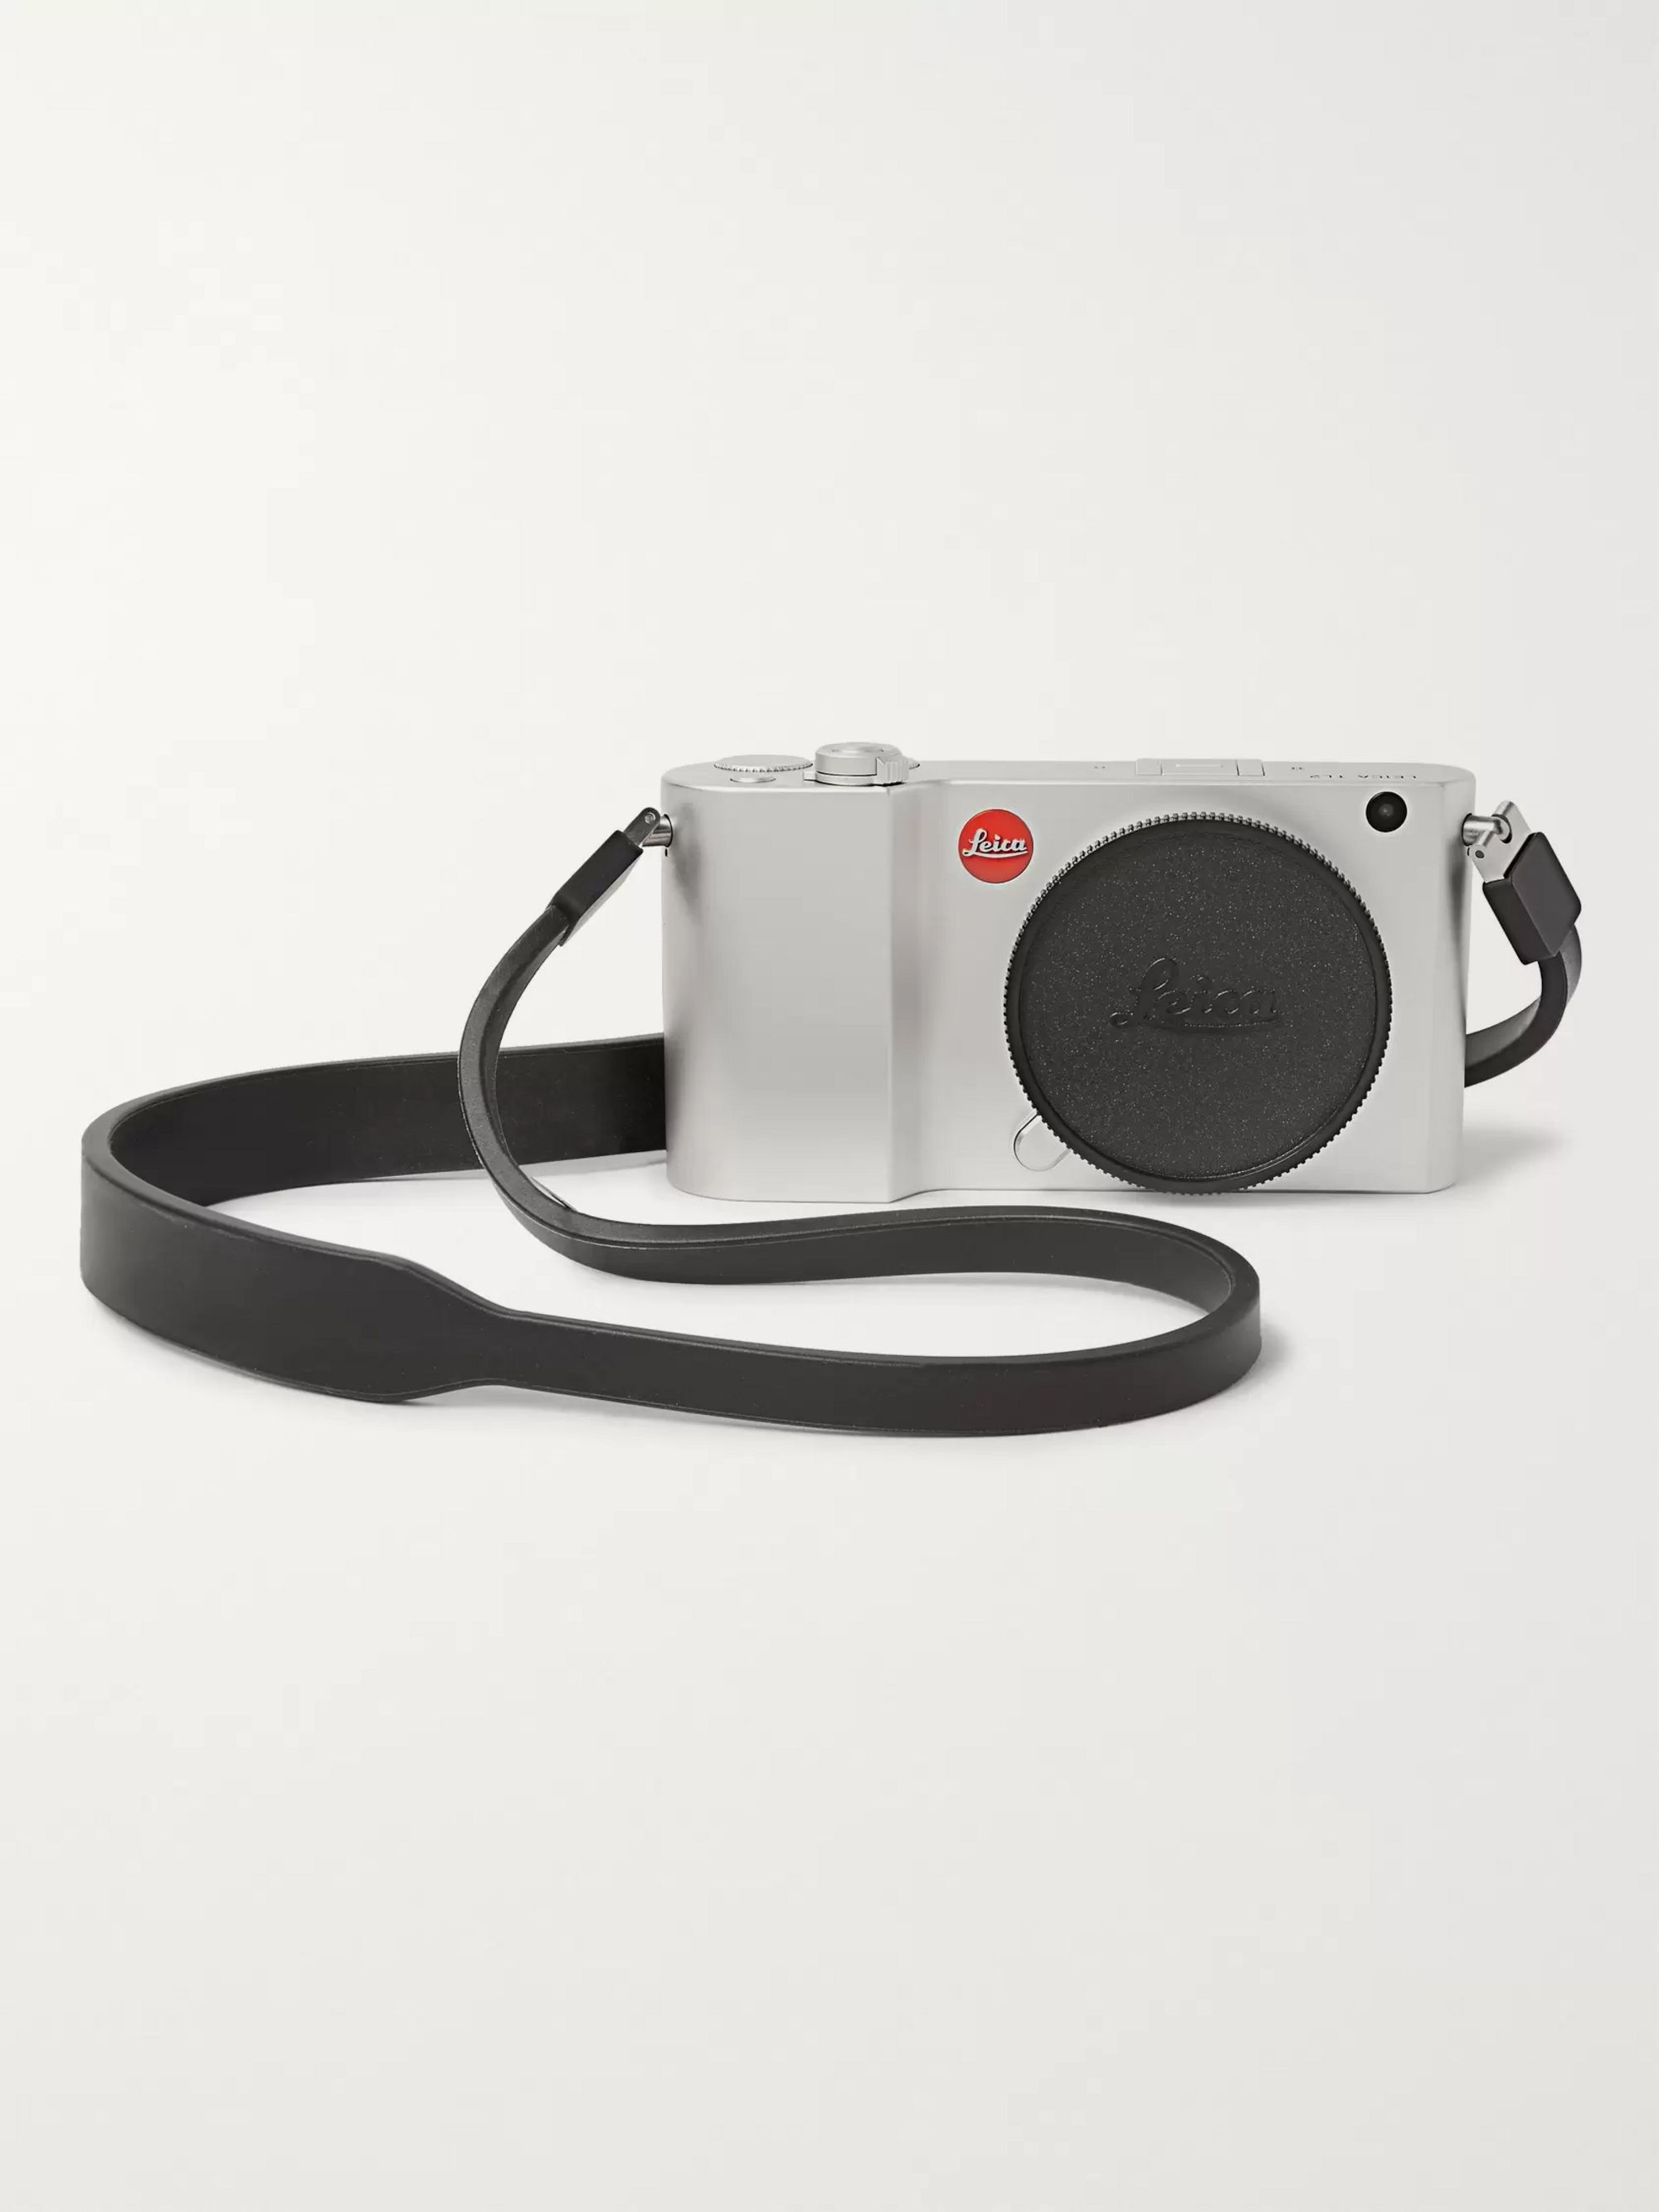 Leica TL2 System Digital Camera